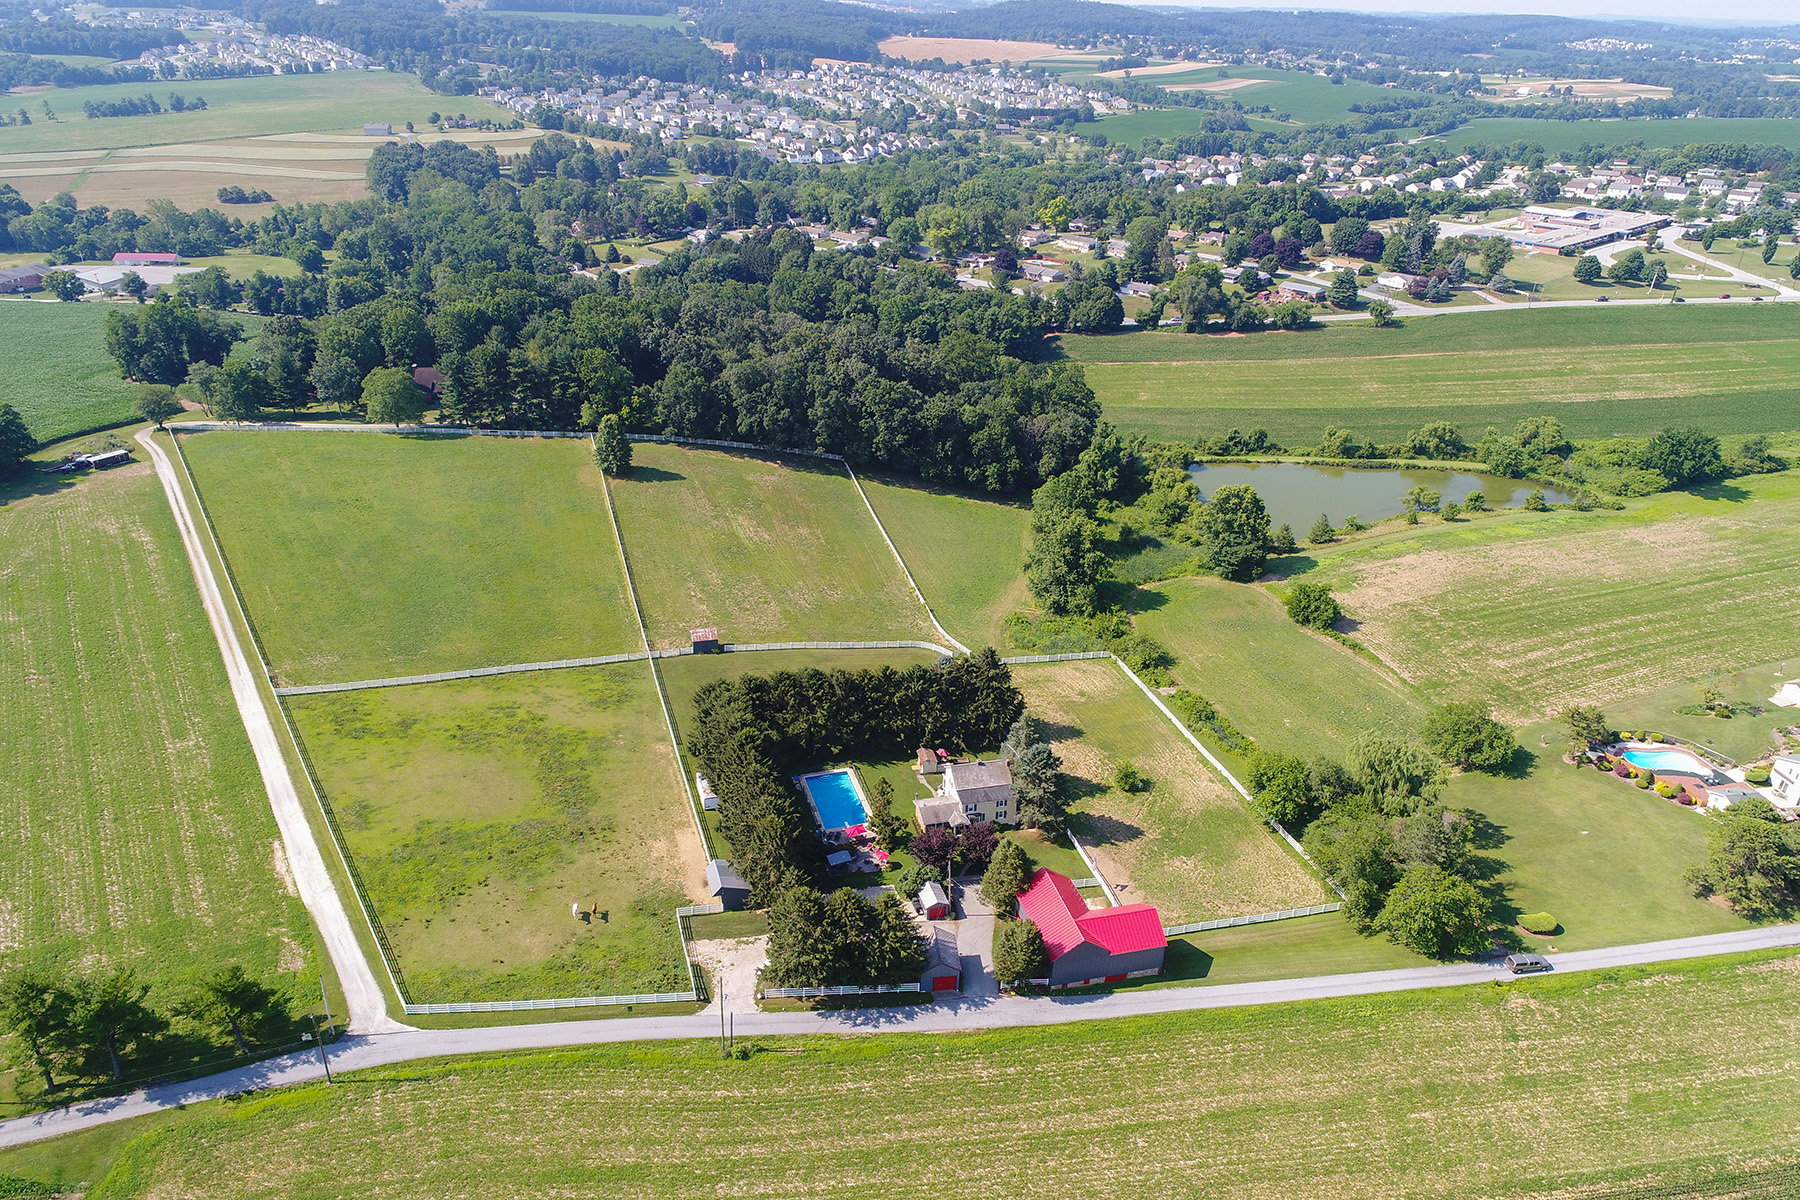 Farm / Ranch / Plantation for Sale at 250 Country By Way 250 Country By Way York, Pennsylvania 17402 United States